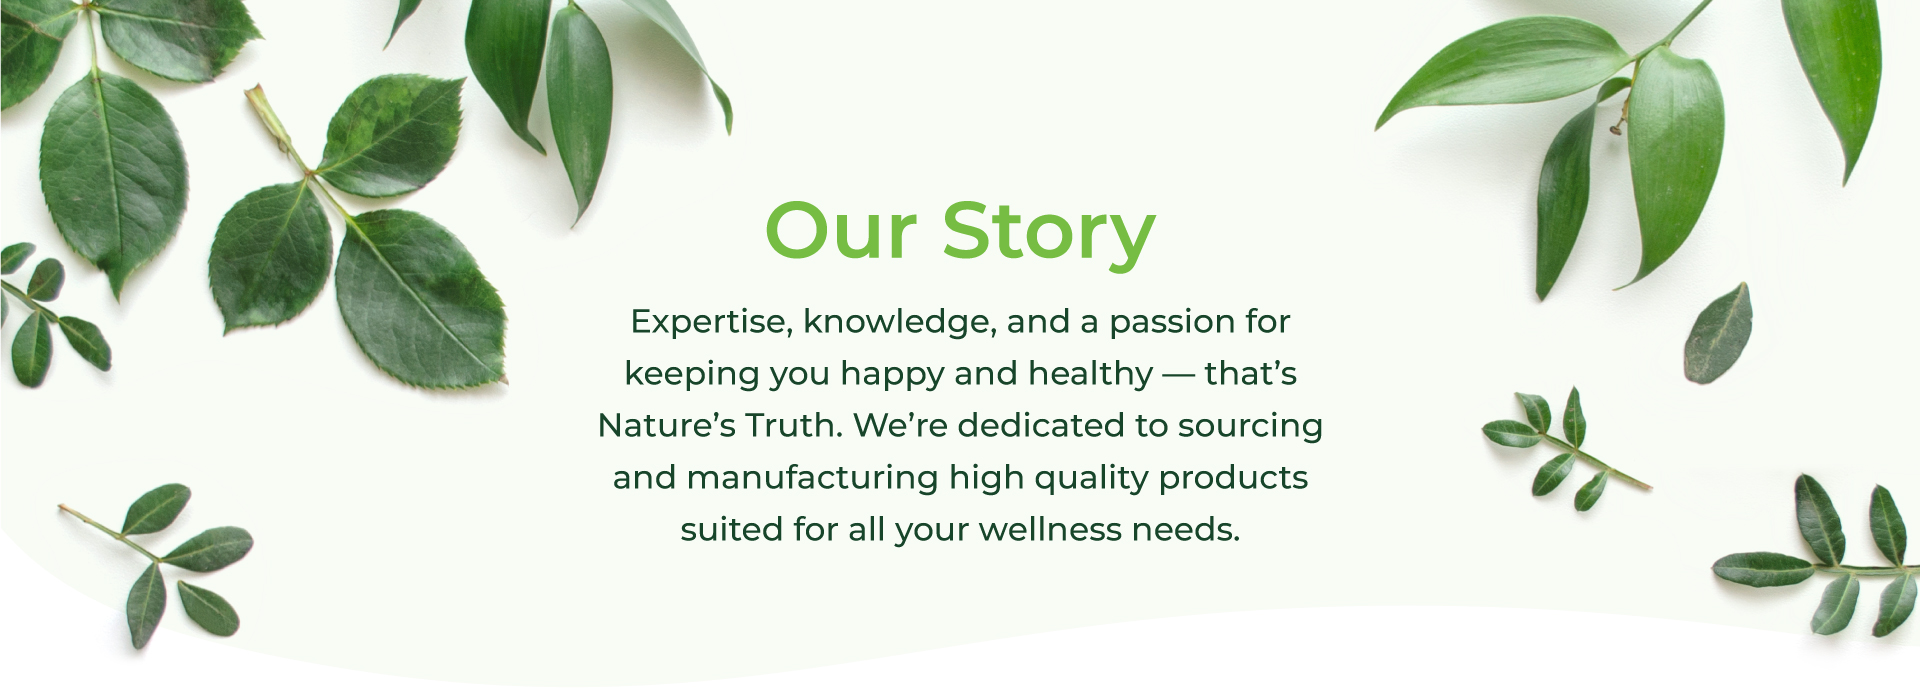 Our Story - Expertise, knowledge, and a passion for keeping you happy and healthy - that's Nature's Truth. We're dedicated to sourcing and manufacturing high quality products suited for all your wellness needs.